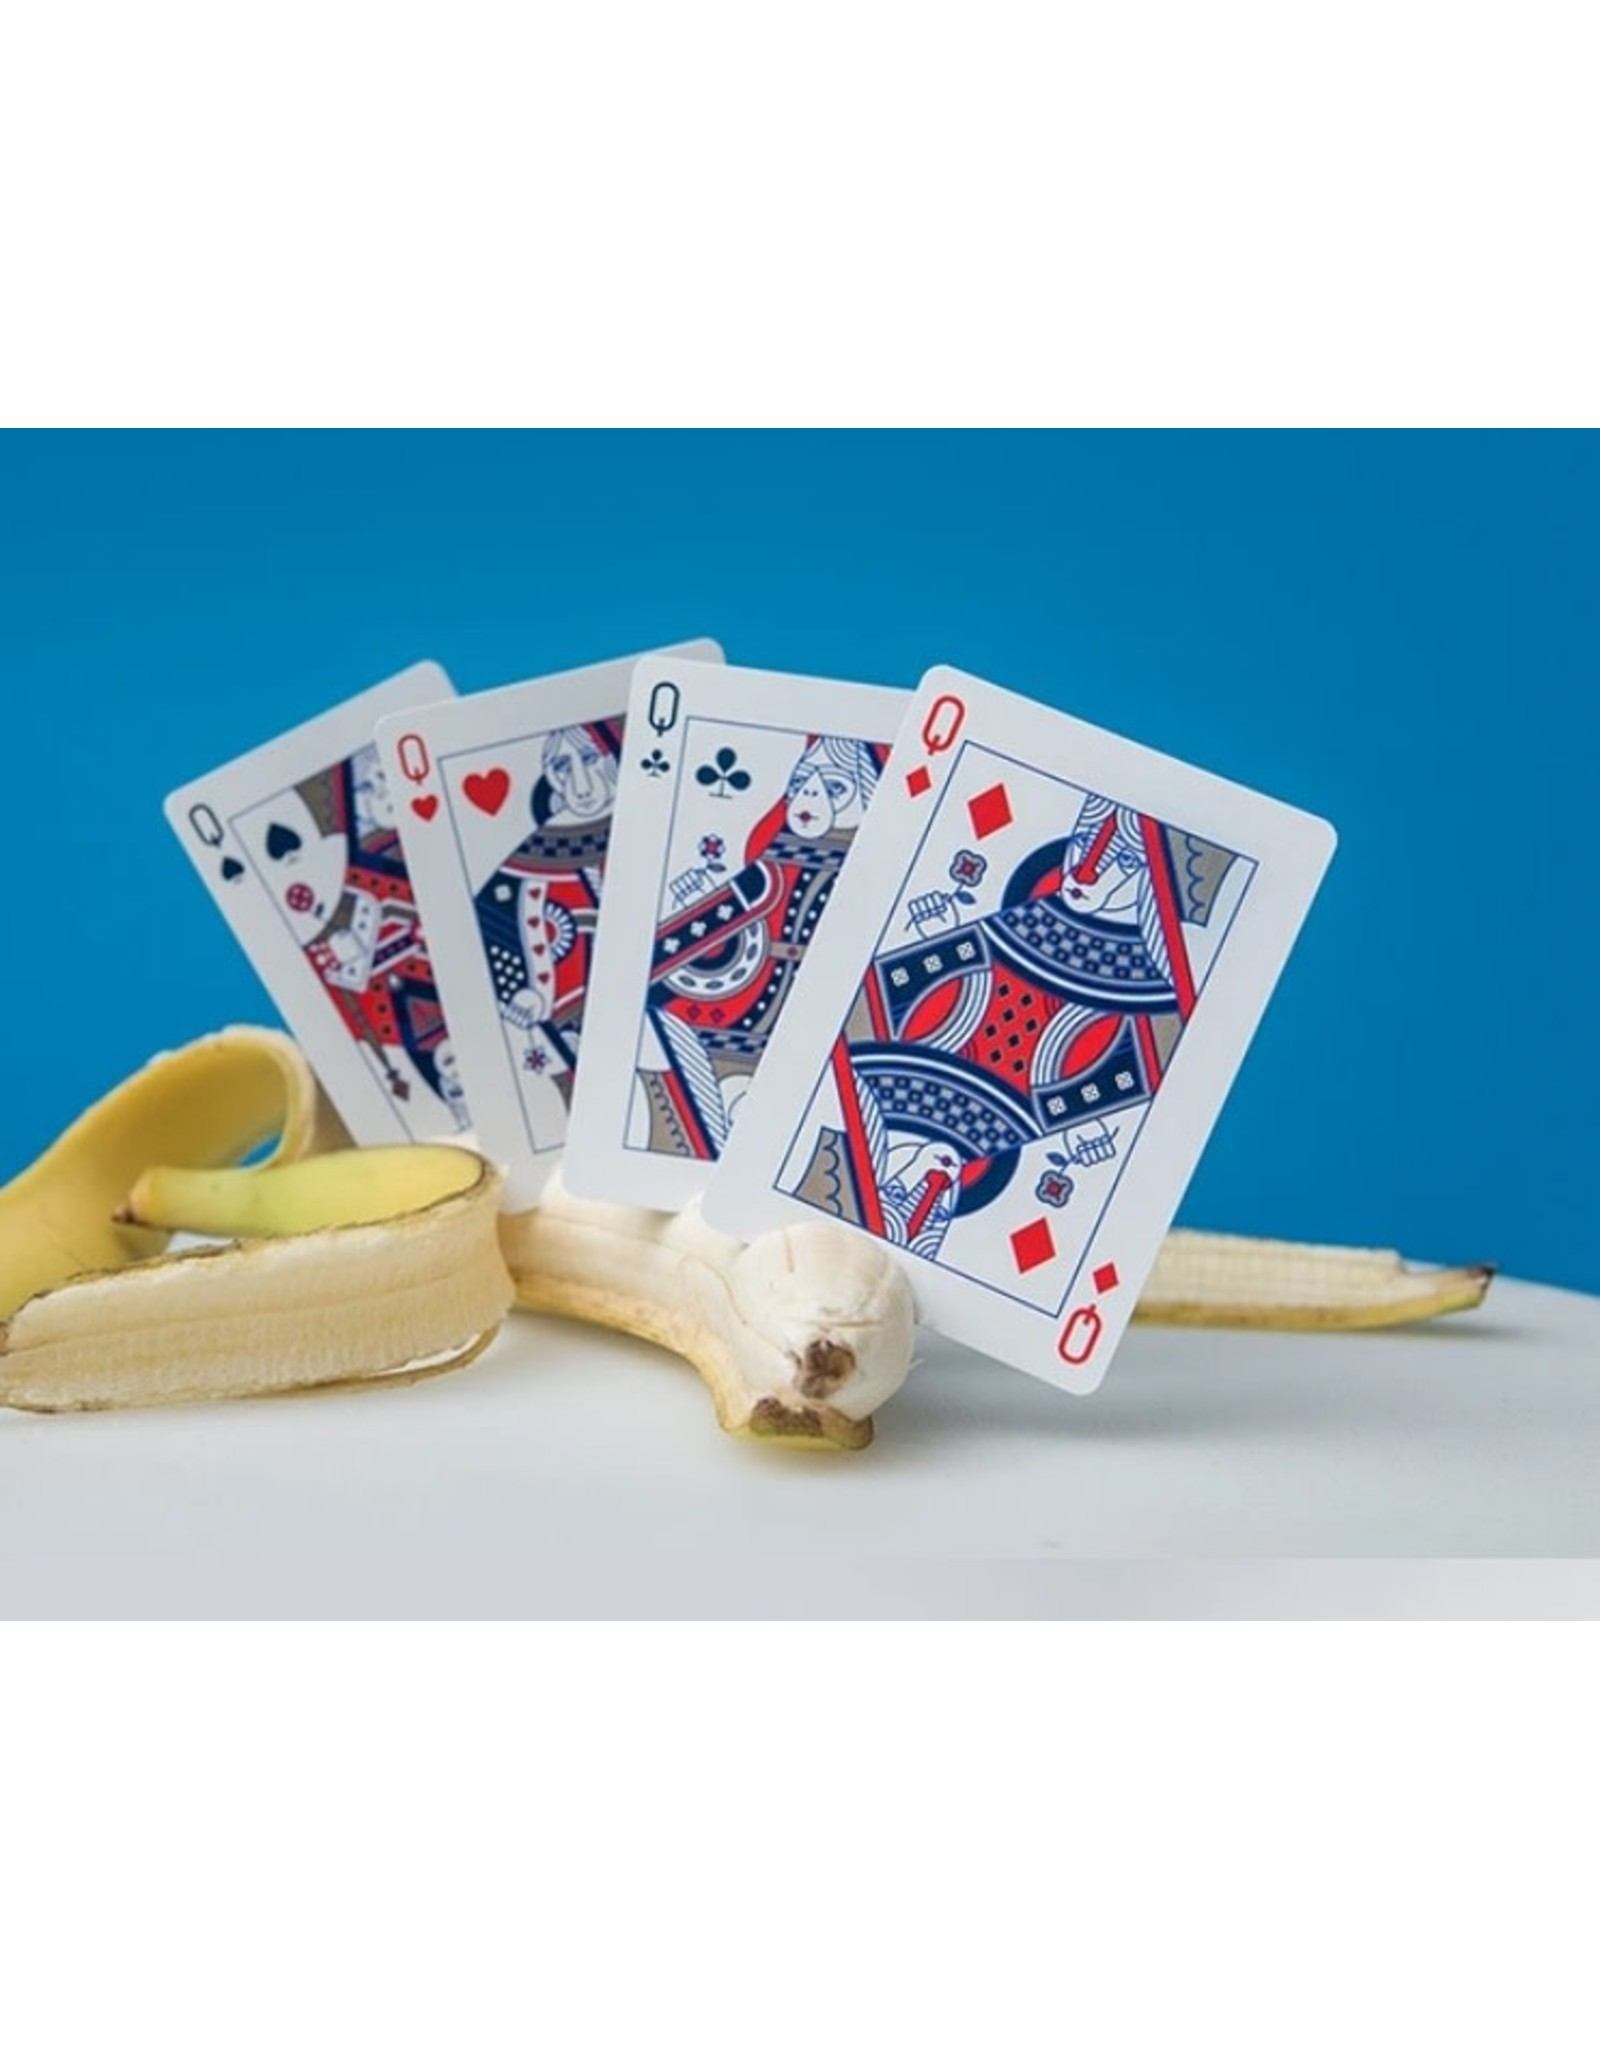 Theory 11 MailChimp Playing Cards